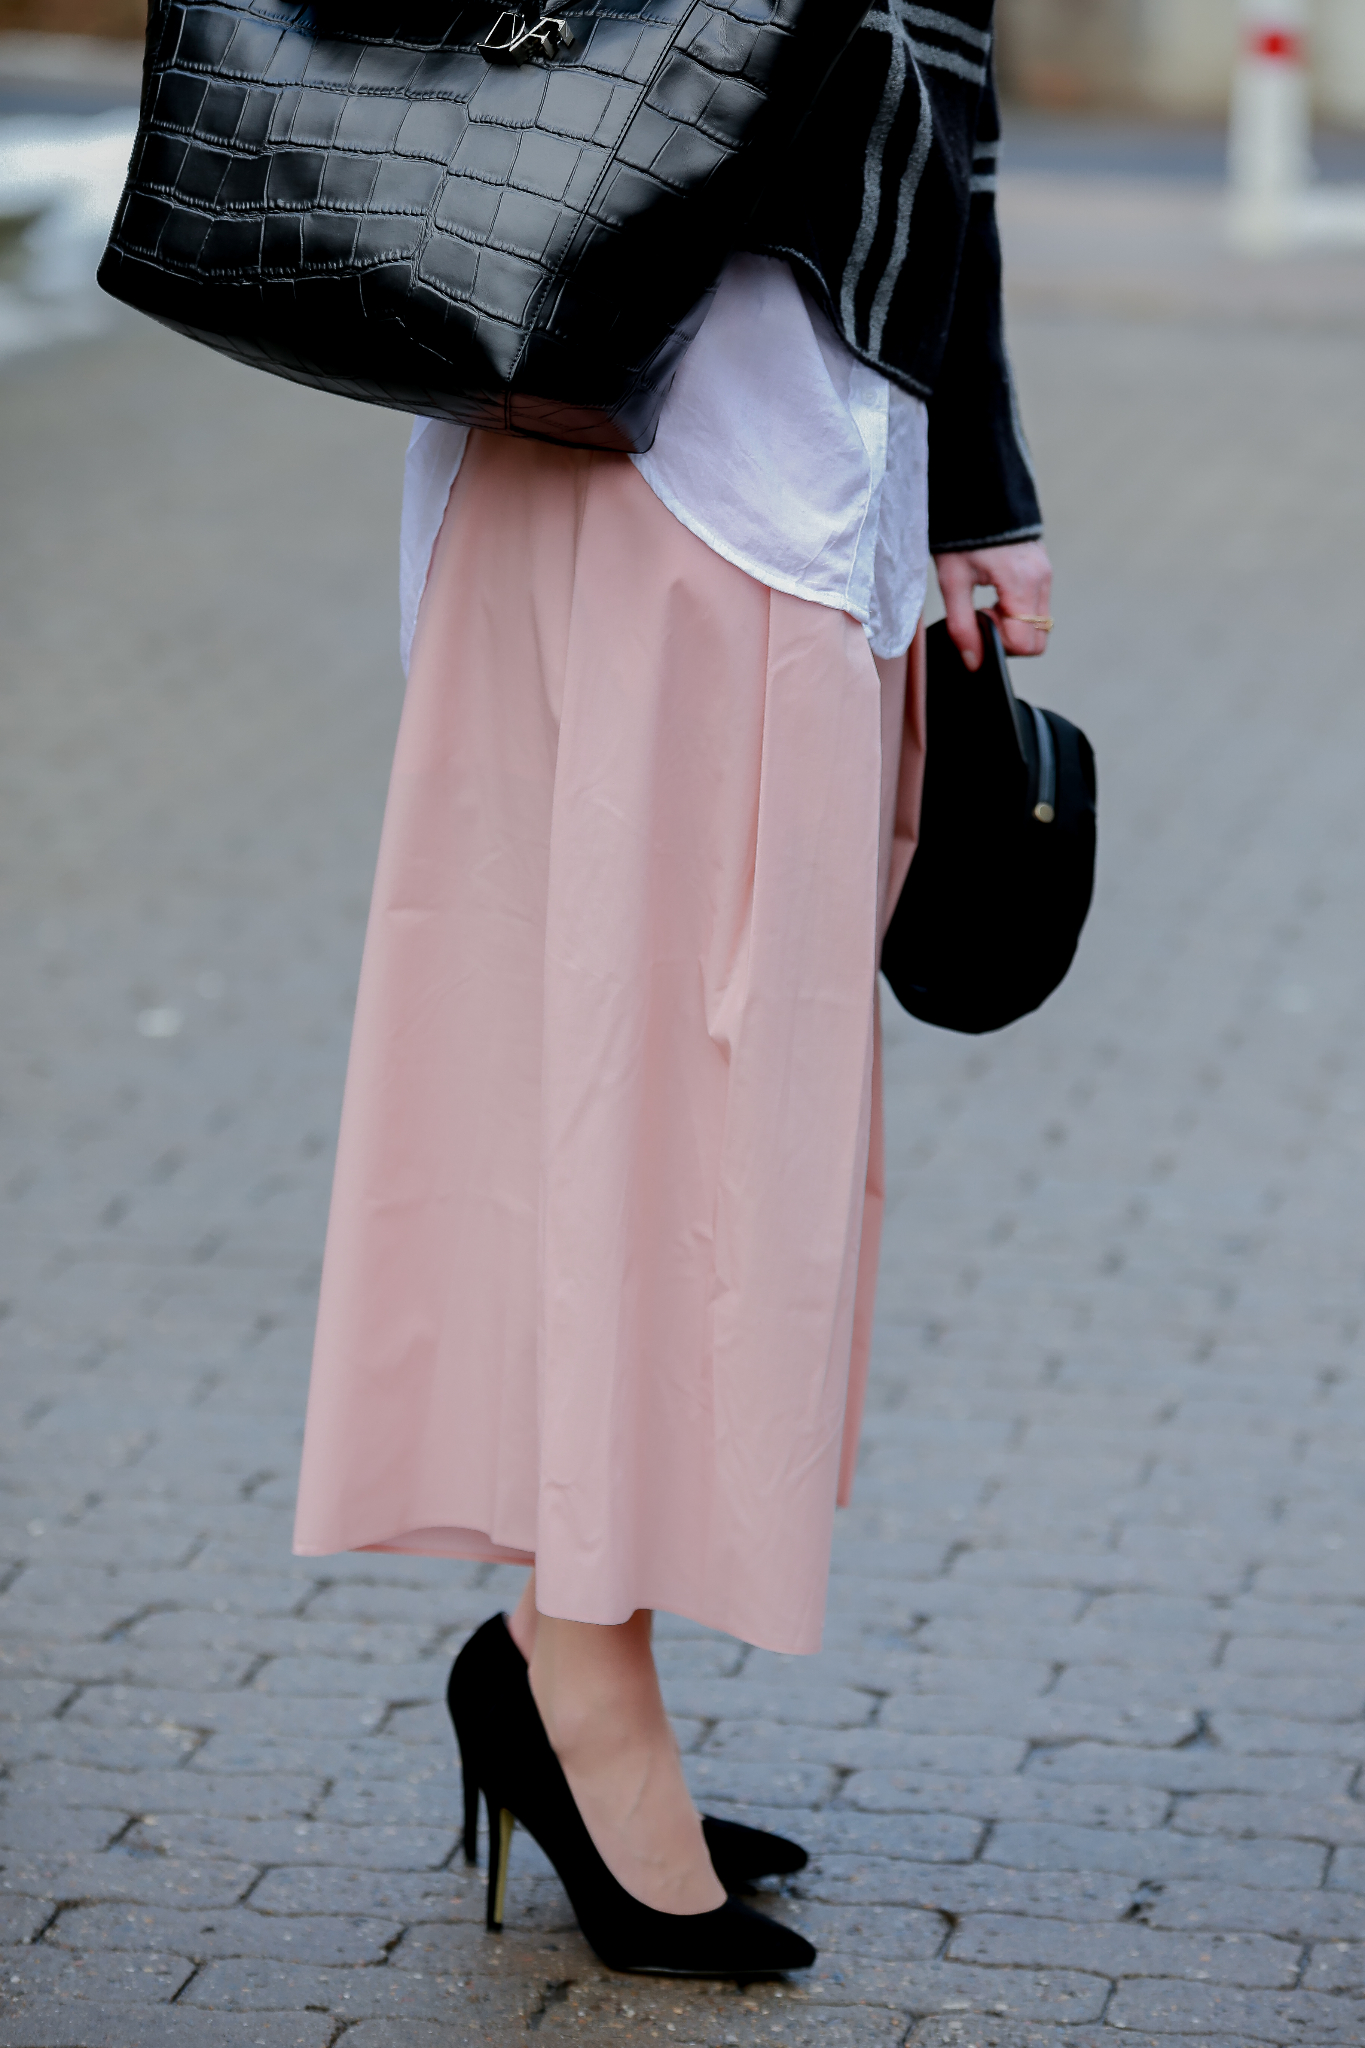 Fashion_Outfit_Pastel_Culotte_Jimmy_Choo-13